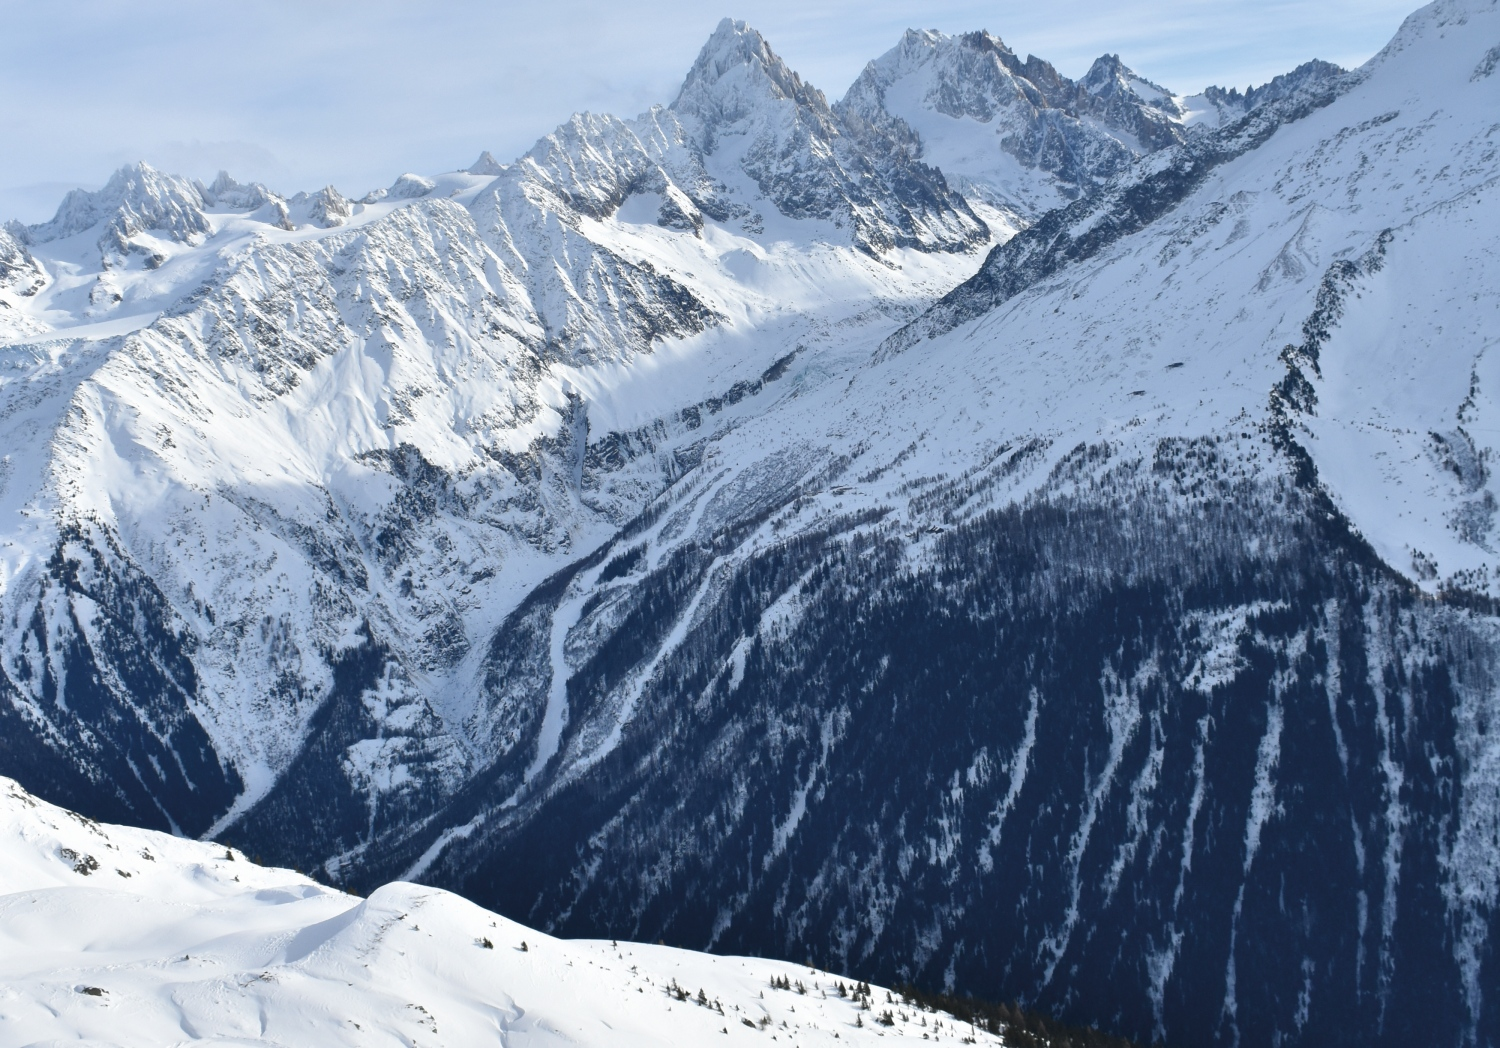 Incredible_mountain_scenenry_Chamonix_France_CREDIT_Mike_Walker.jpg